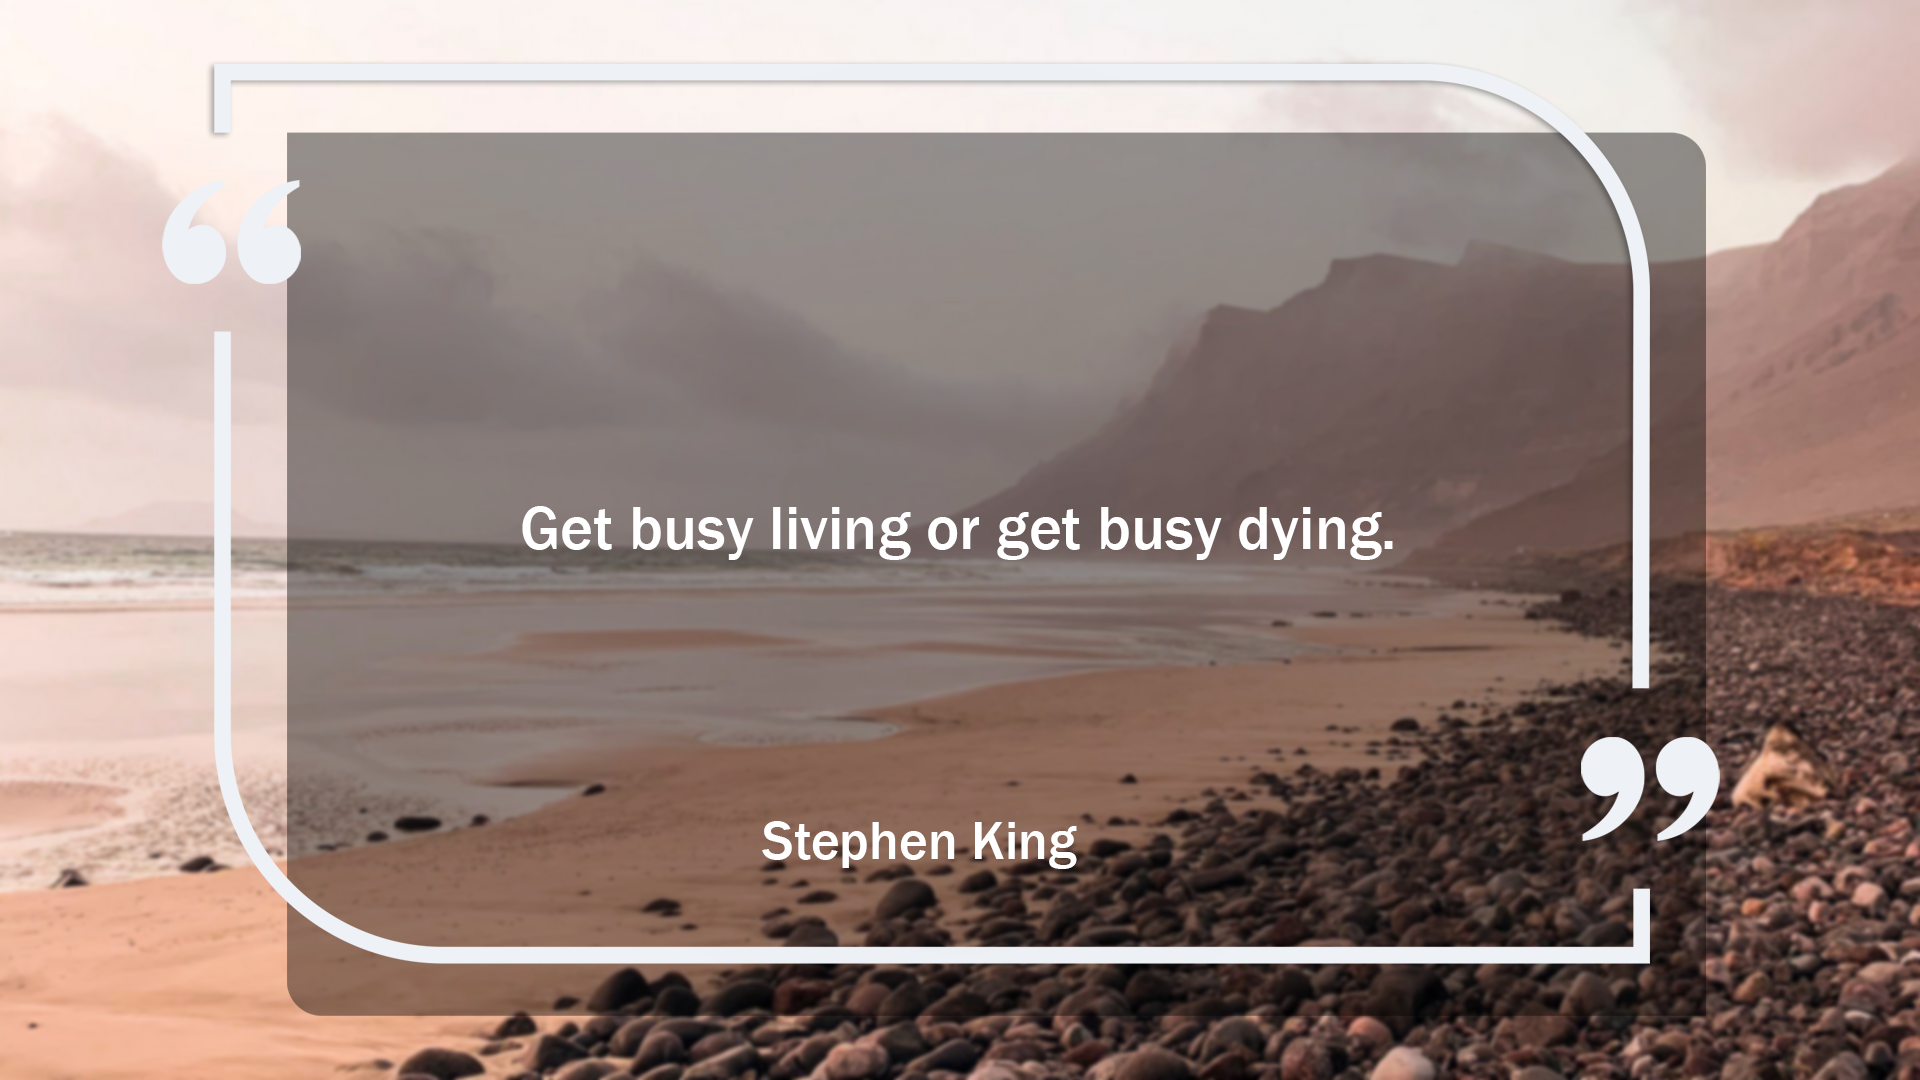 Get busy living or get busy dying. – Stephen King [1920 x 1080]